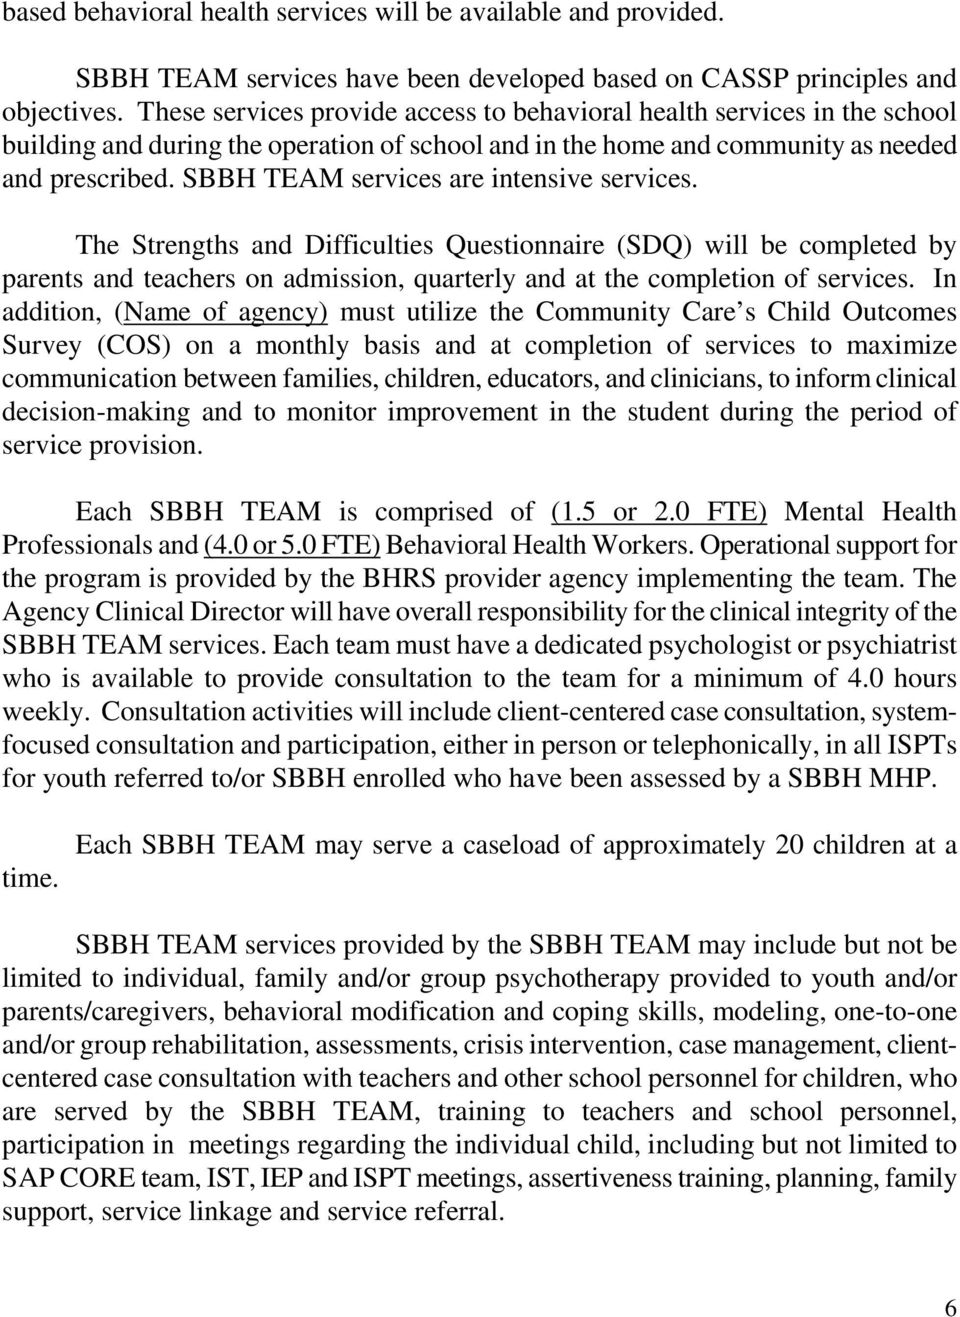 SBBH TEAM services are intensive services. The Strengths and Difficulties Questionnaire (SDQ) will be completed by parents and teachers on admission, quarterly and at the completion of services.